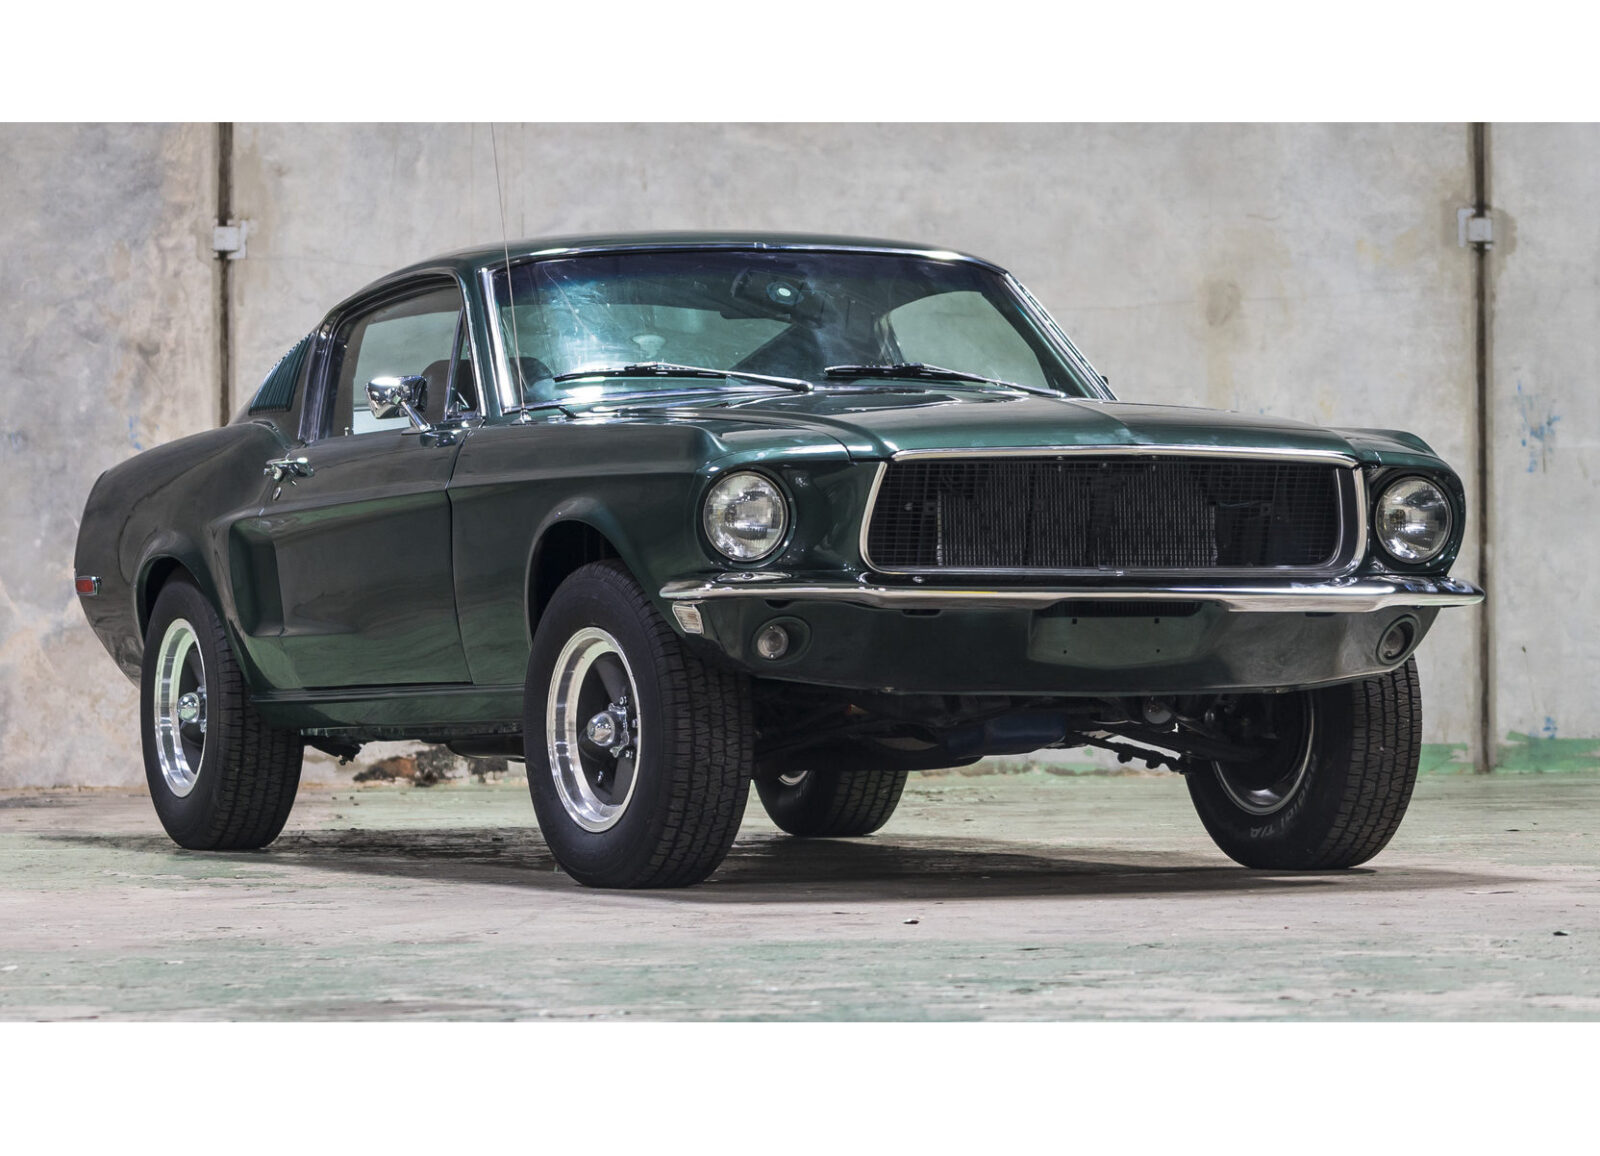 Ford Mustang 1969 Character